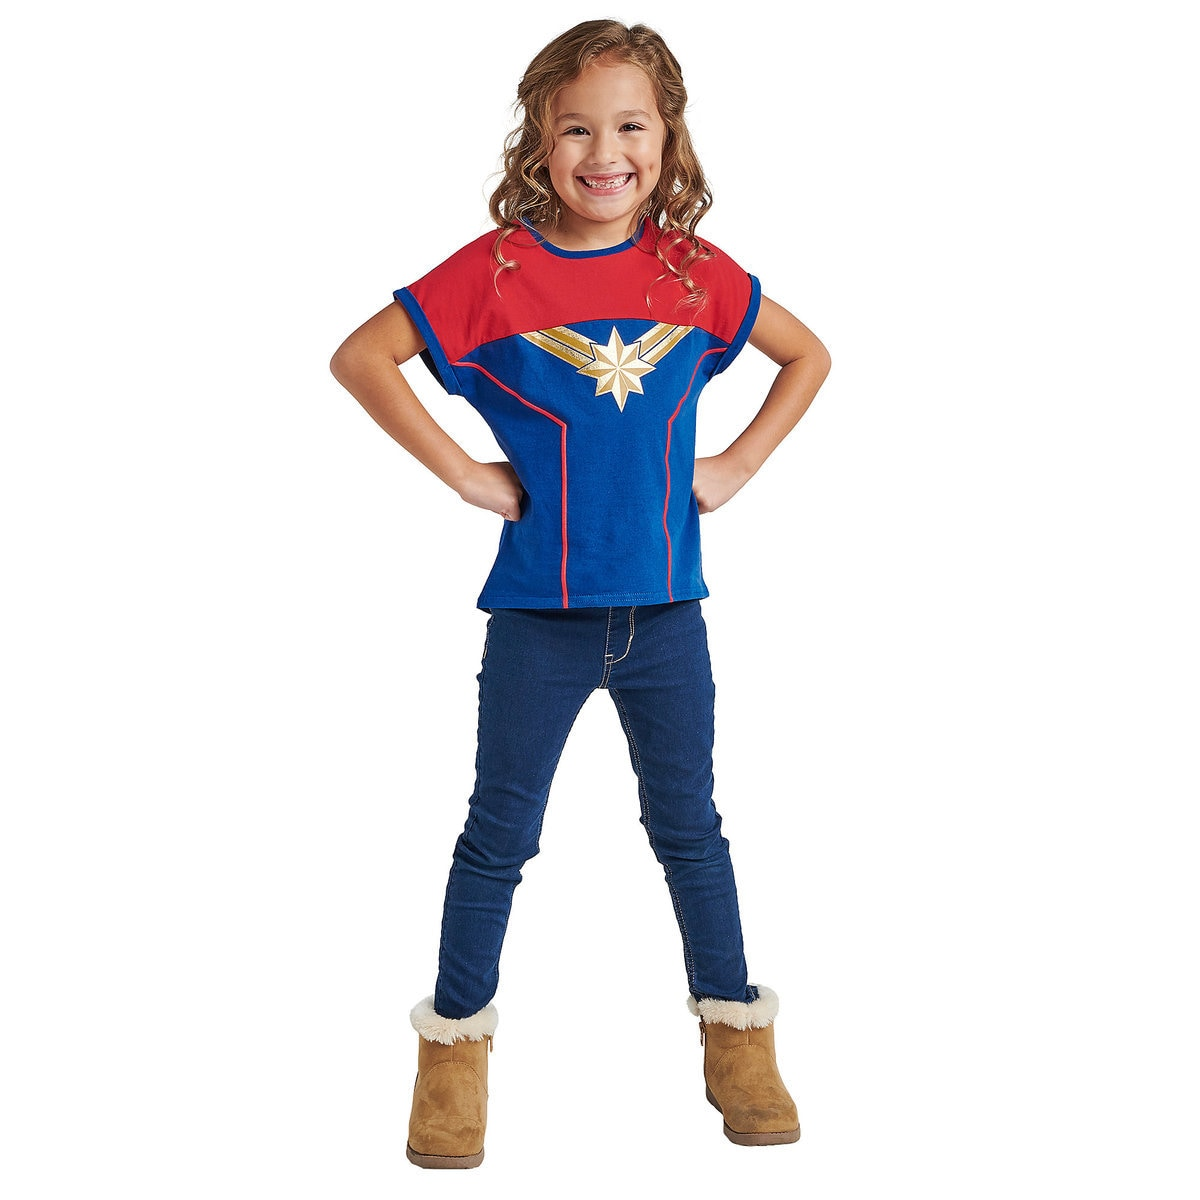 be9406b8 Product Image of Marvel's Captain Marvel Shirt for Girls # 2